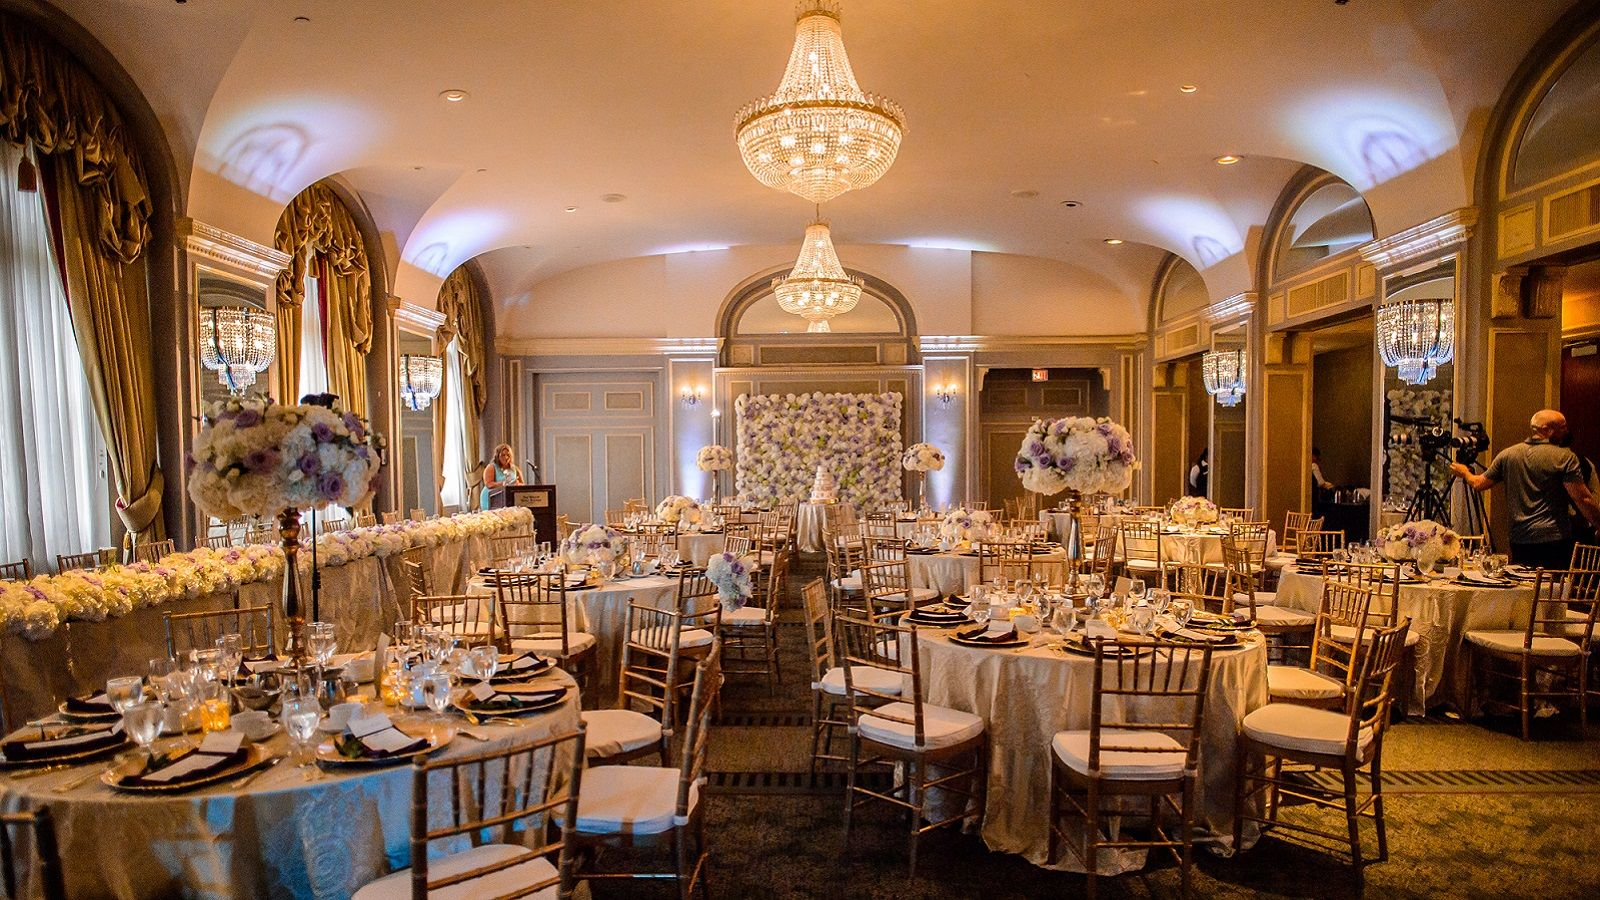 Wedding Venues Halifax - Ballroom